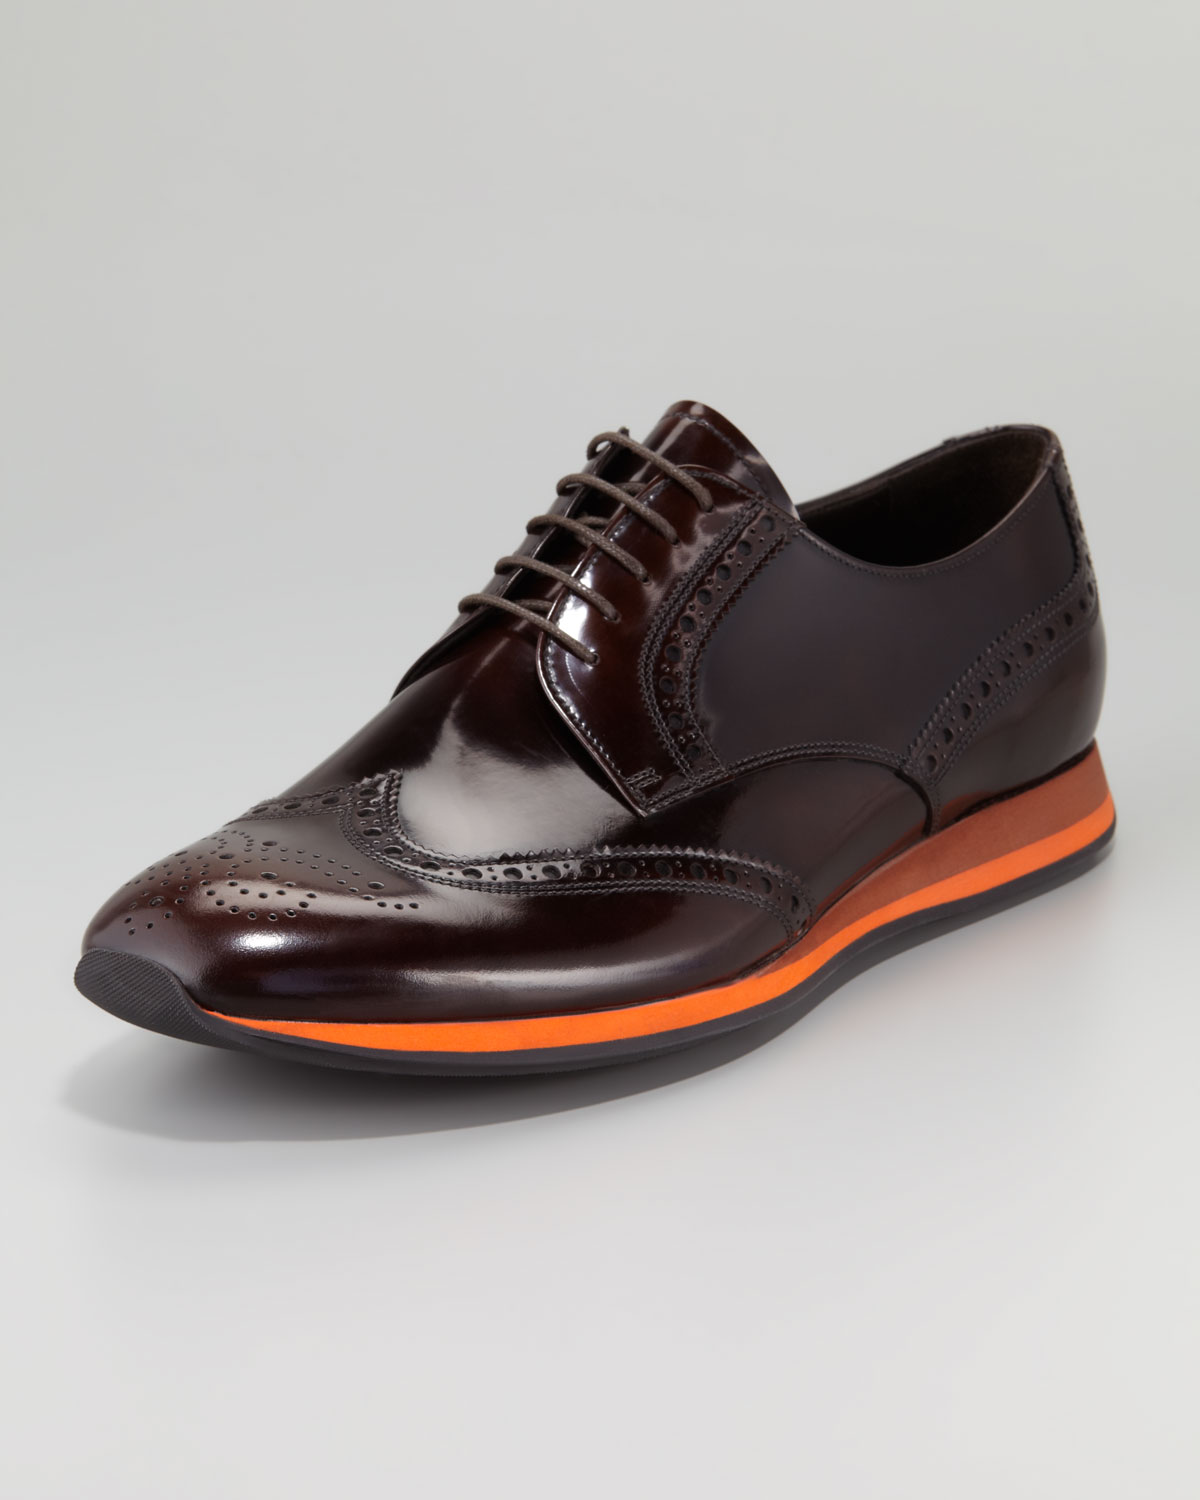 Lyst - Prada Contrast sole Wing-tip Shoe in Brown for Men